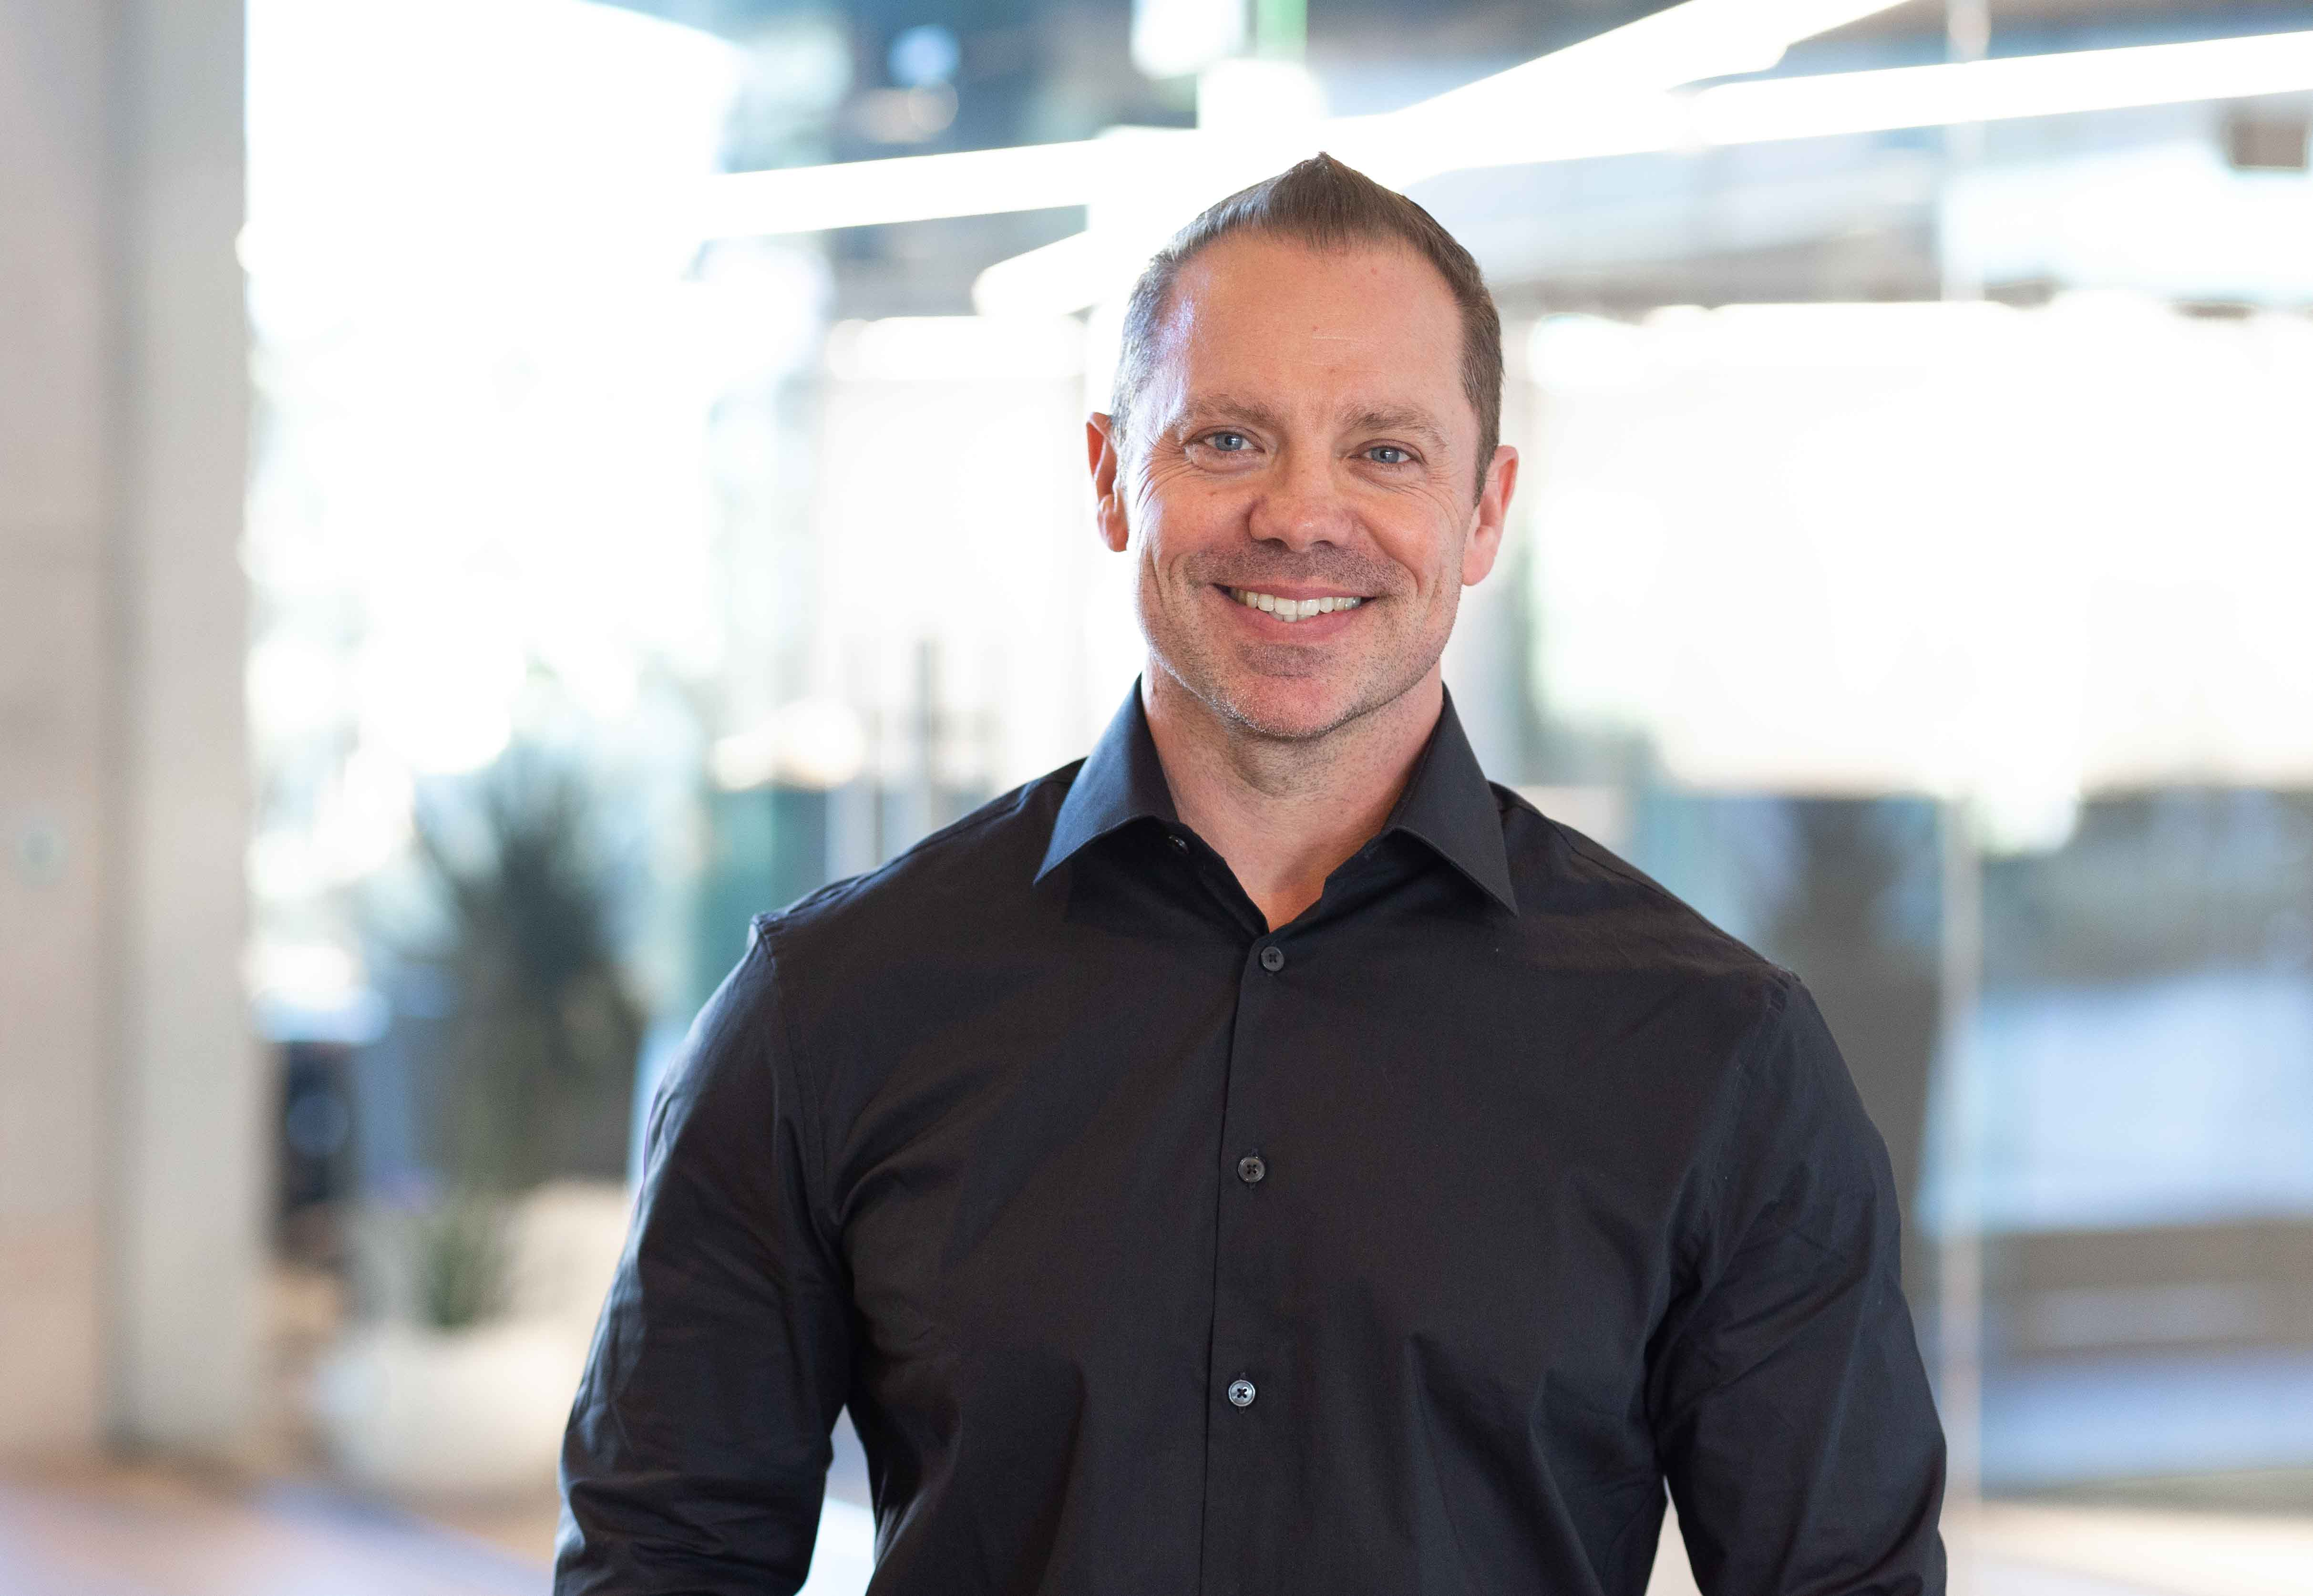 Tips From The Top: One On One With Shaun Grove, President of Club Pilates